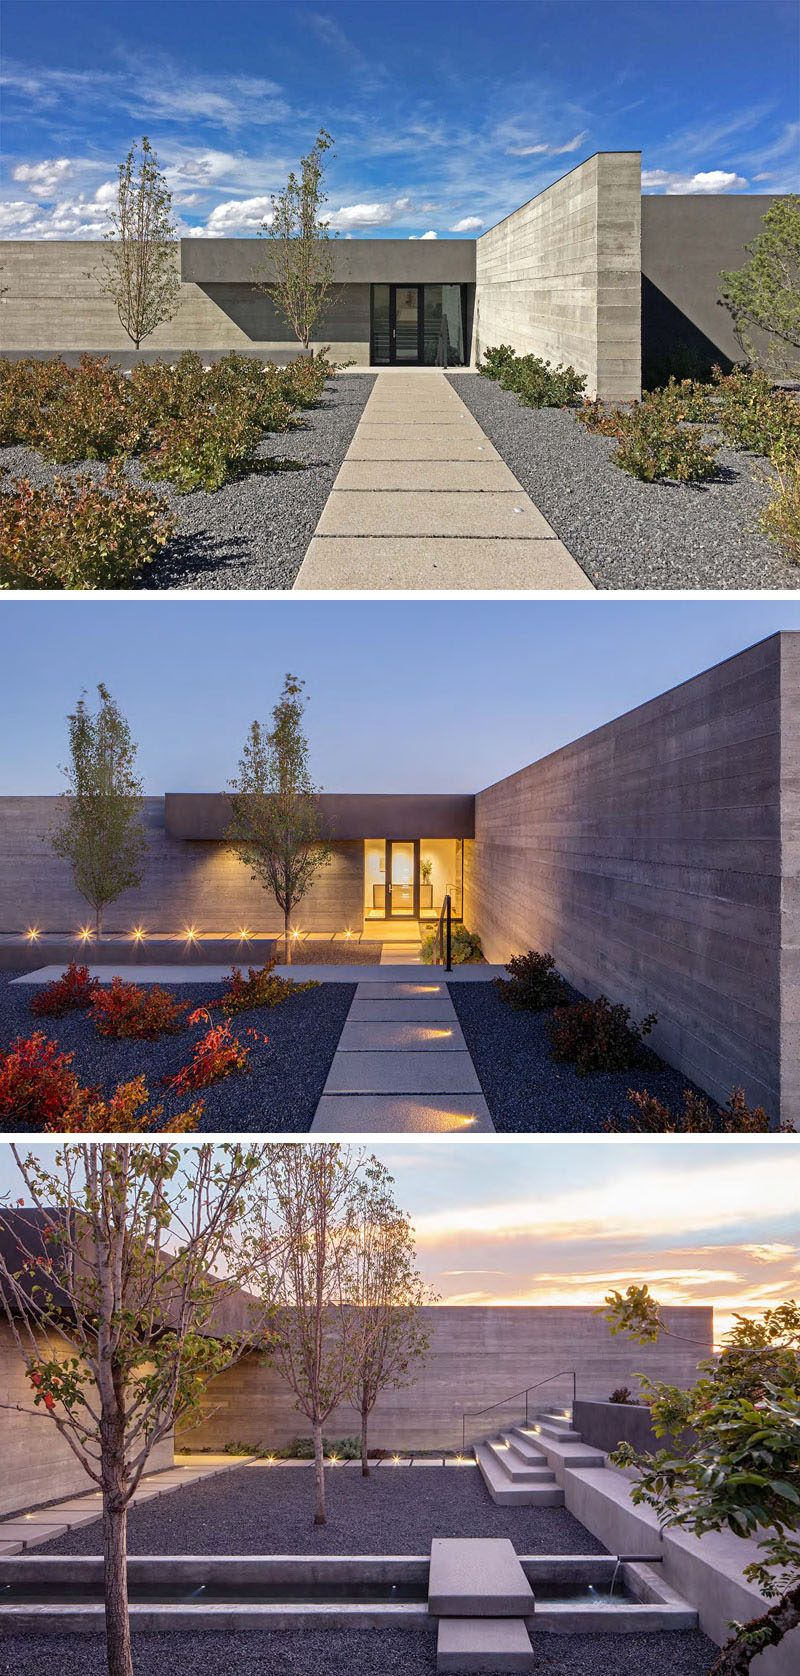 This modern landscaping includes a path thats lit up at night and a recessed courtyard with a simple water feature